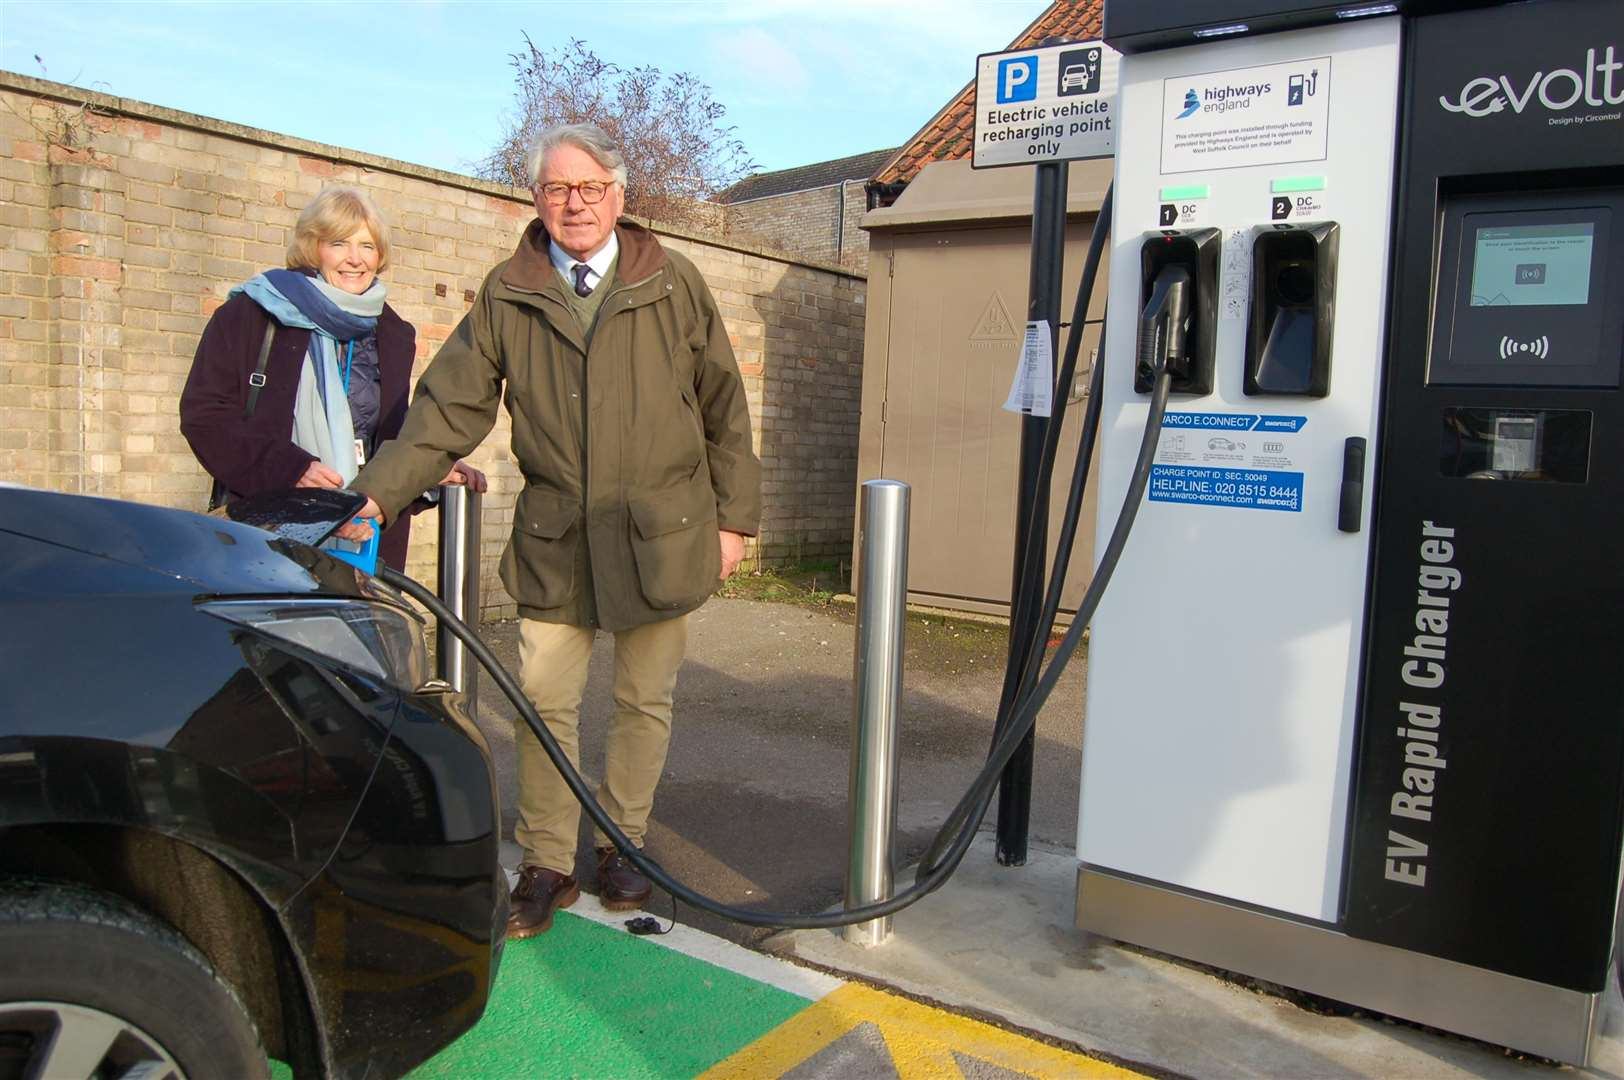 Cllr Peter Stevens with Cllr Susan Glossop demonstrating the new rapid charger.